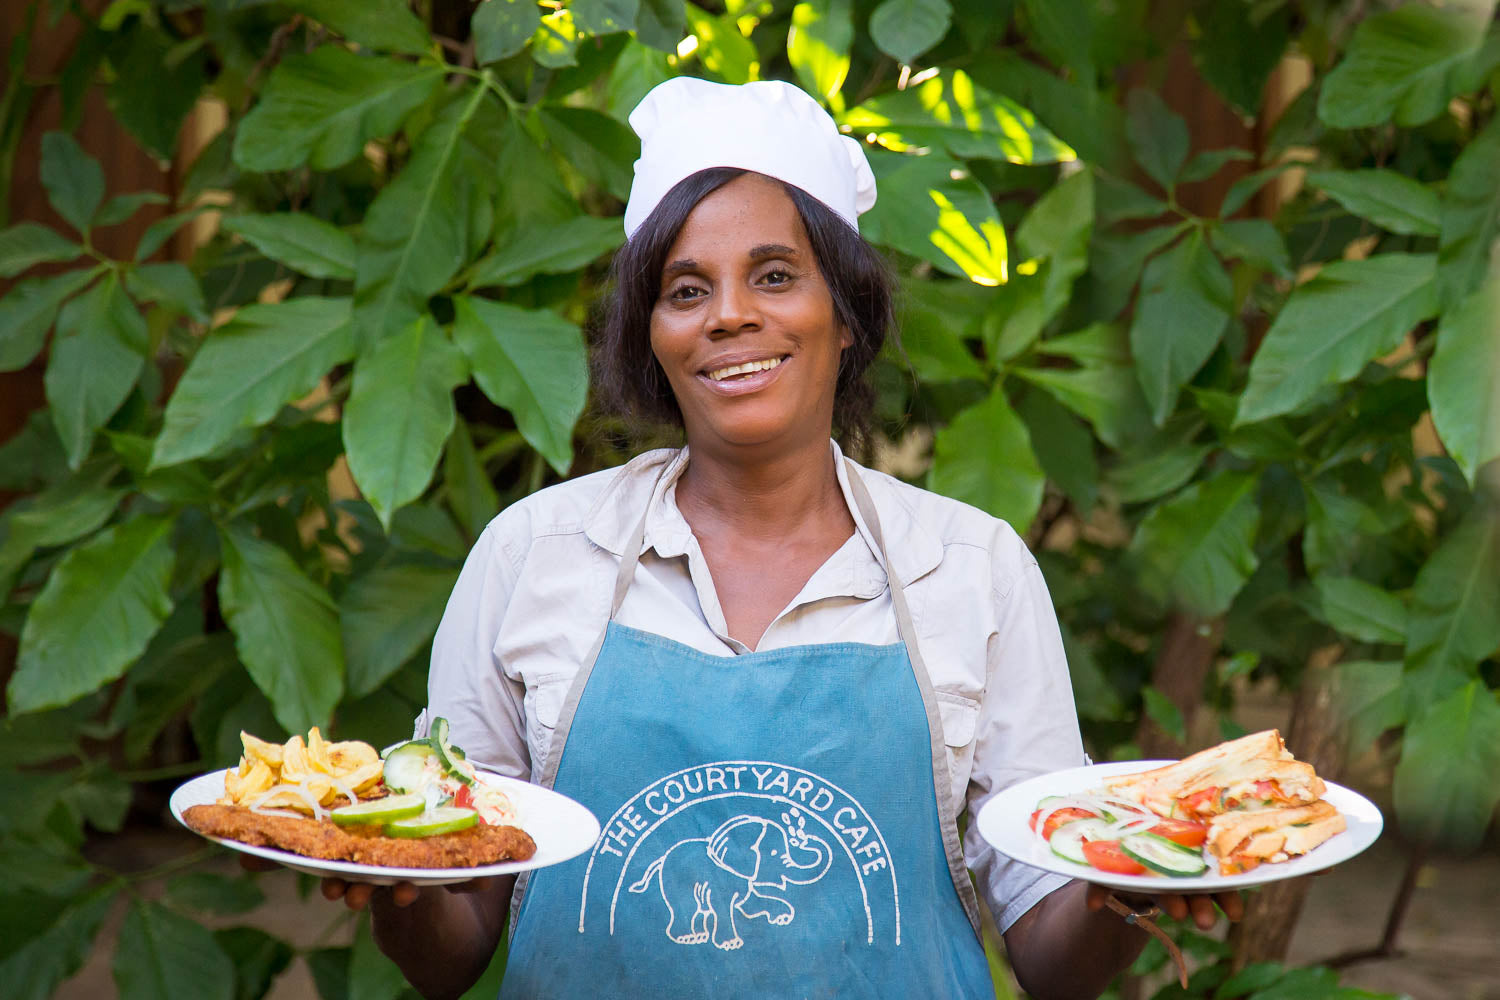 The Cafe and Restaurant at Tribal Textiles is run by local chef Dorica and offers delicious food